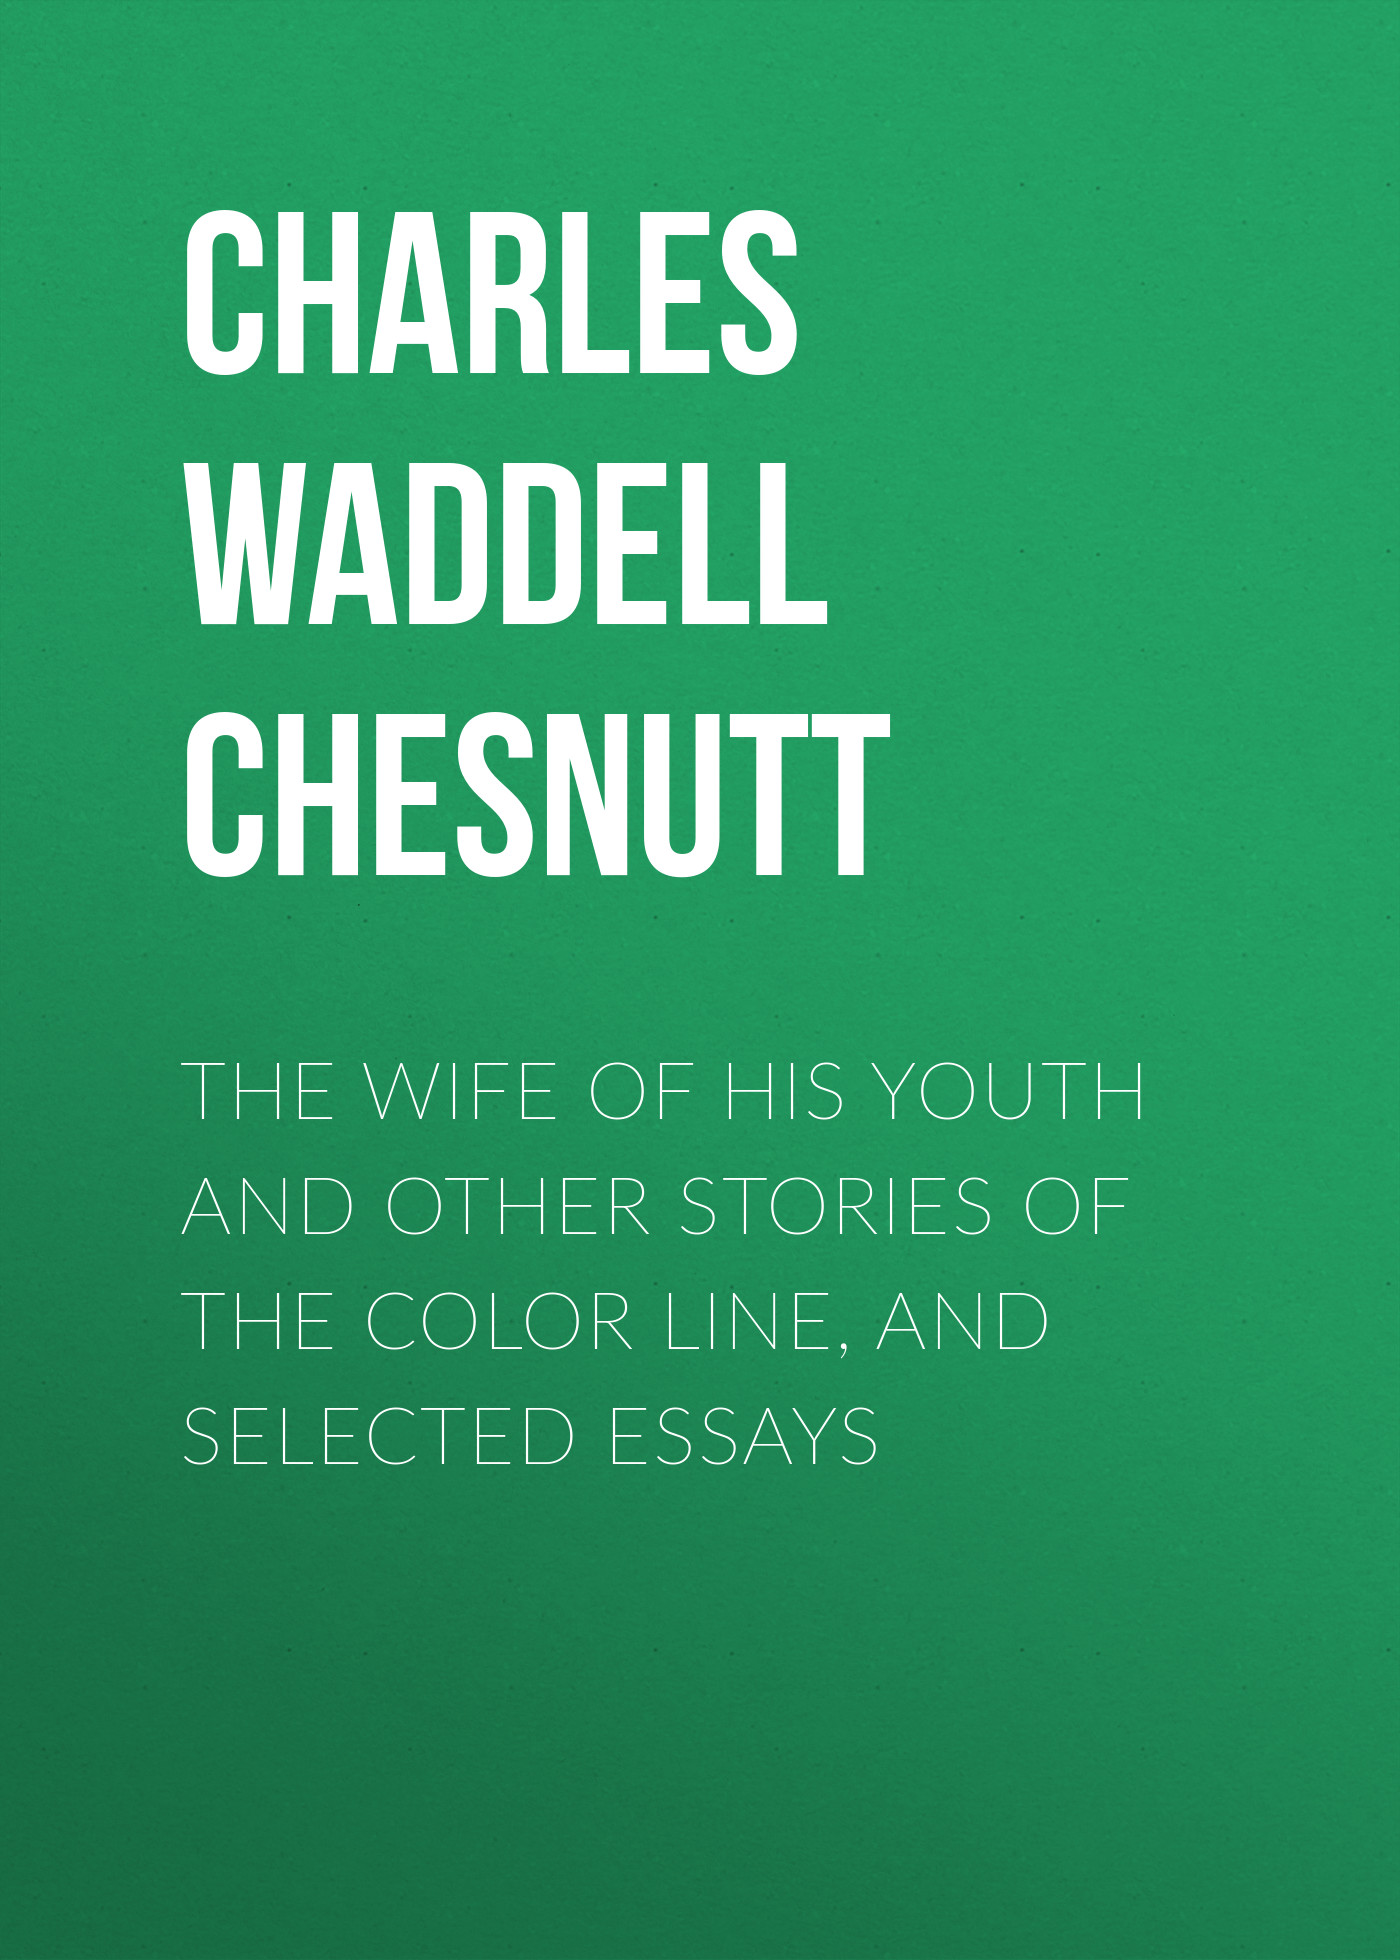 Charles Waddell Chesnutt The Wife of his Youth and Other Stories of the Color Line, and Selected Essays